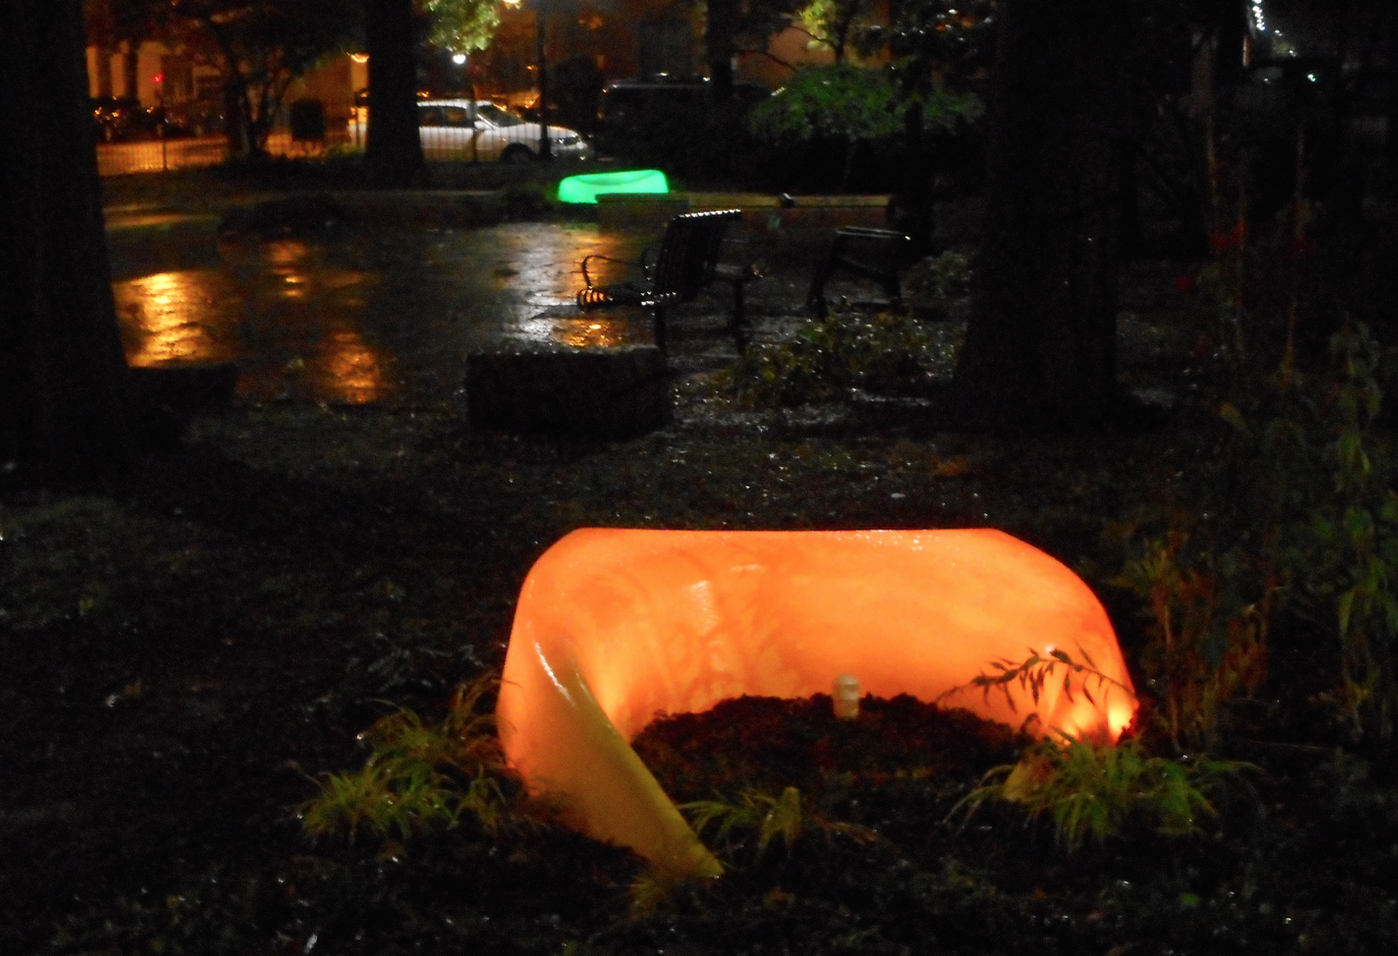 Two LightWells lit up in Library Park at night, seen from the library building